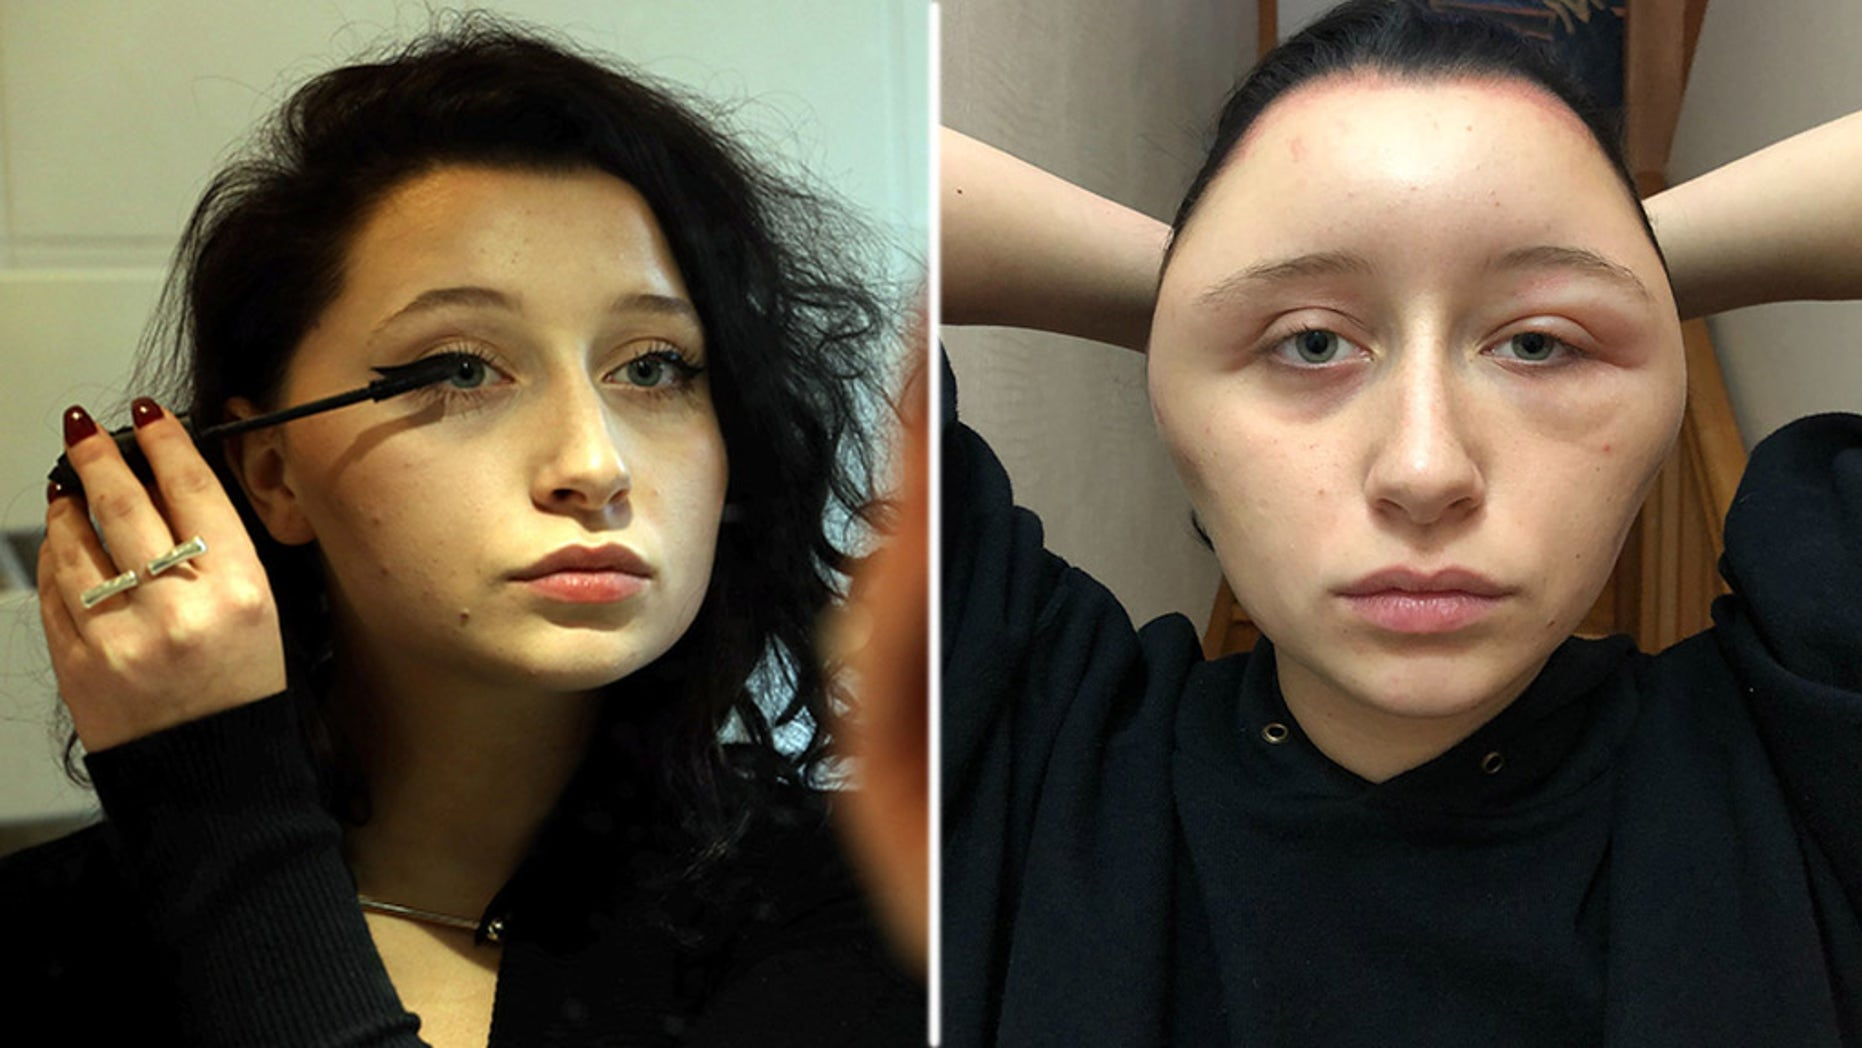 Woman S Allergic Reaction To Hair Dye Causes Head To Swell To